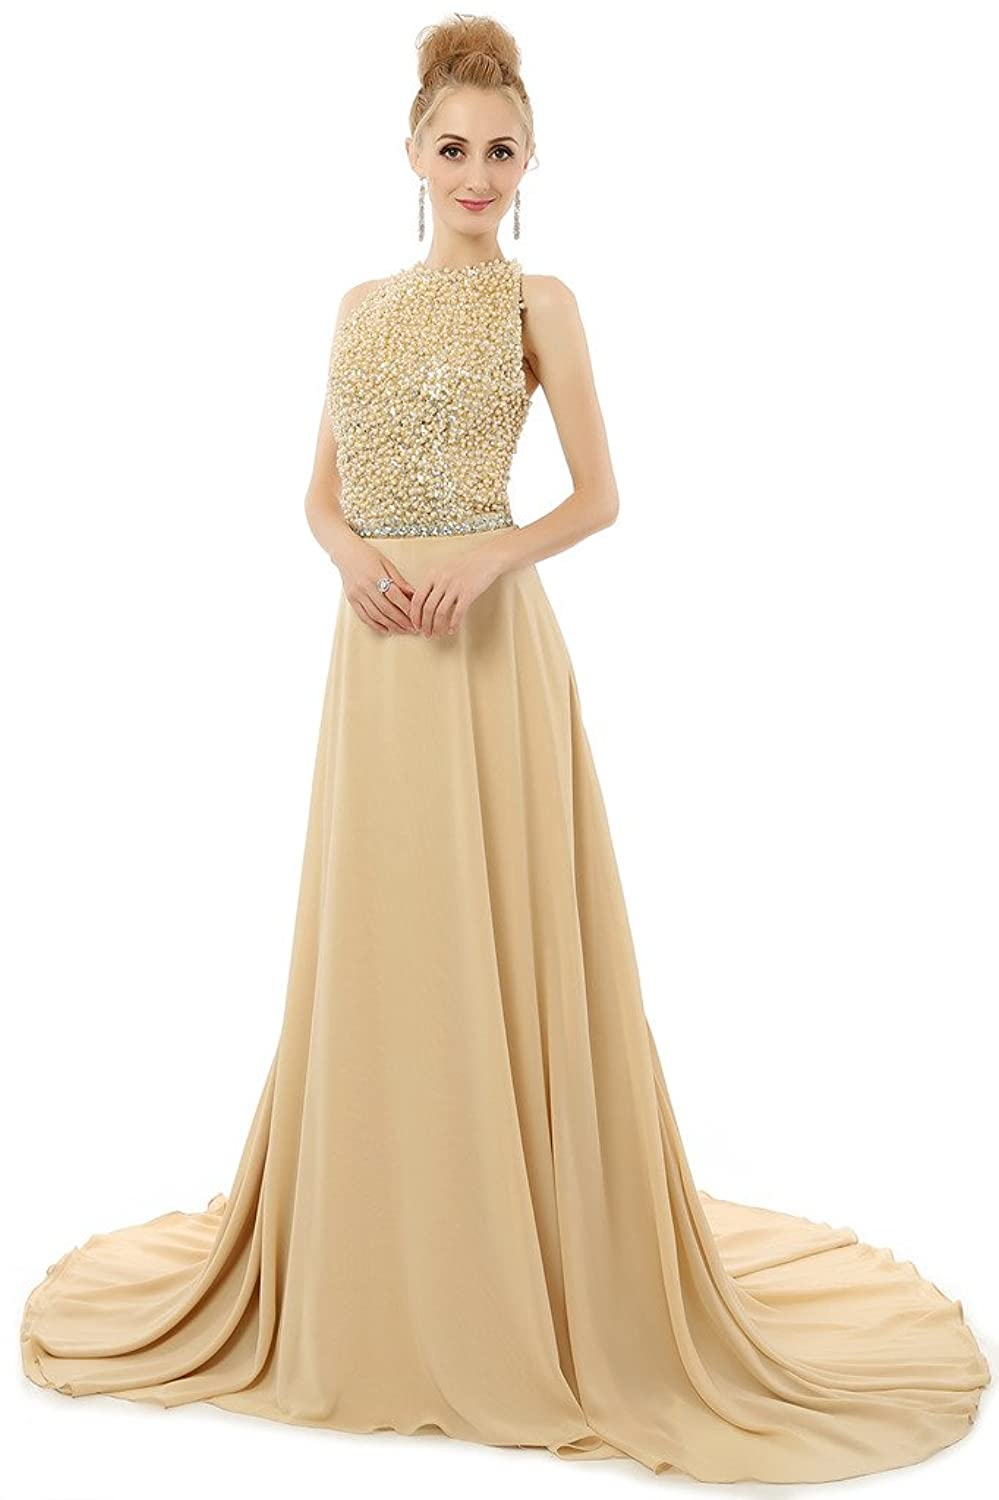 HONGFUYU Gorgeous Pearls Backless A-line Long Formal Evening Dress Wedding Party Prom Gown